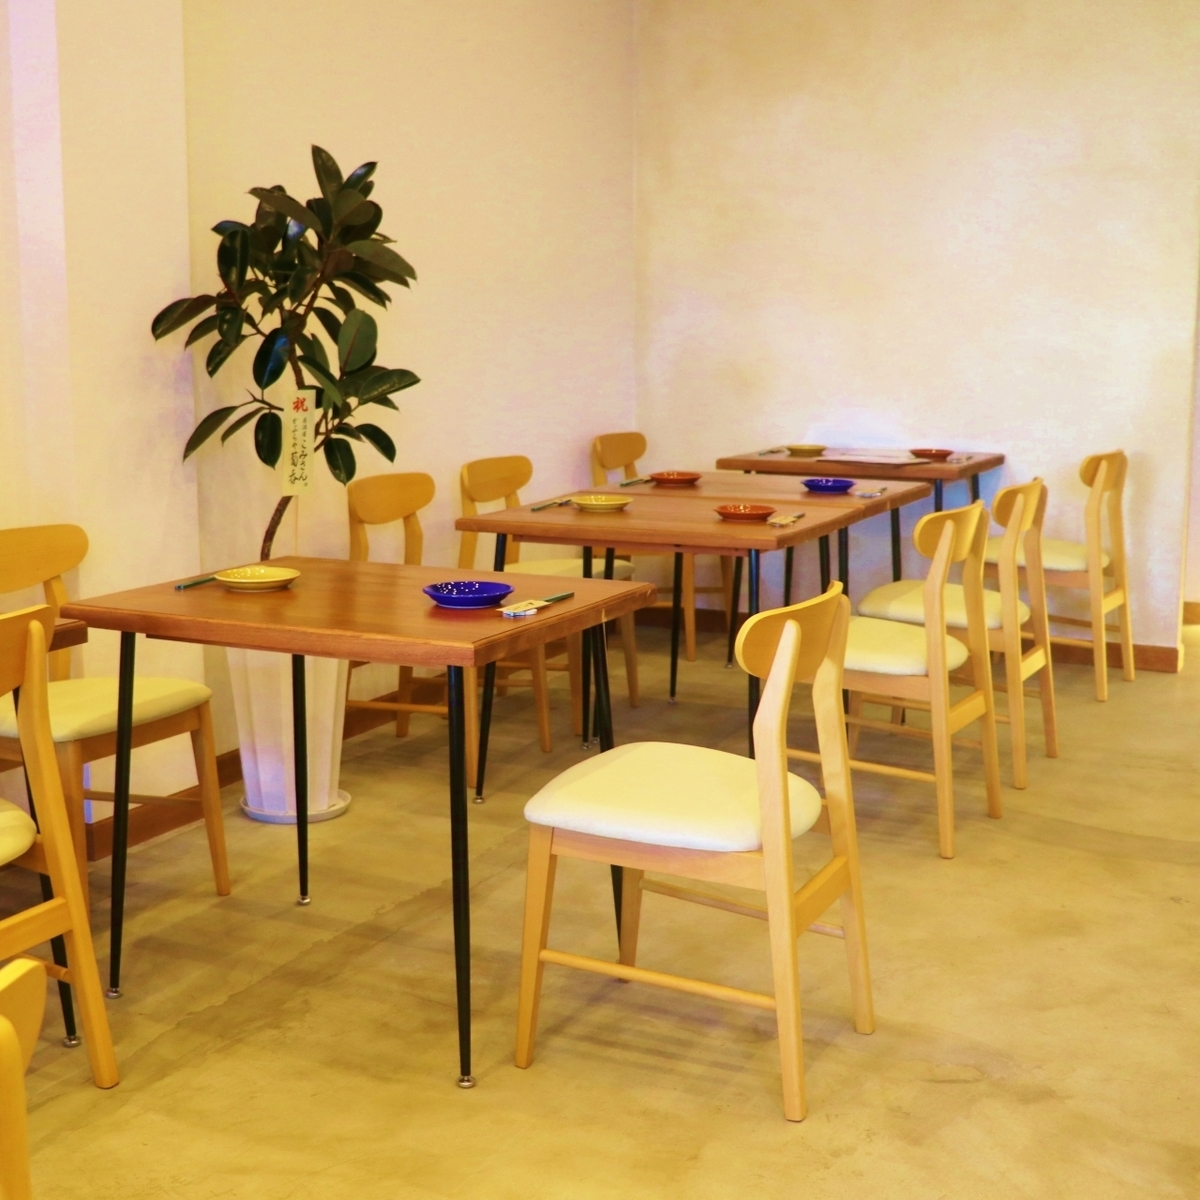 Seats for two people are prepared for table seats.You can also combine according to the number of visitors ♪